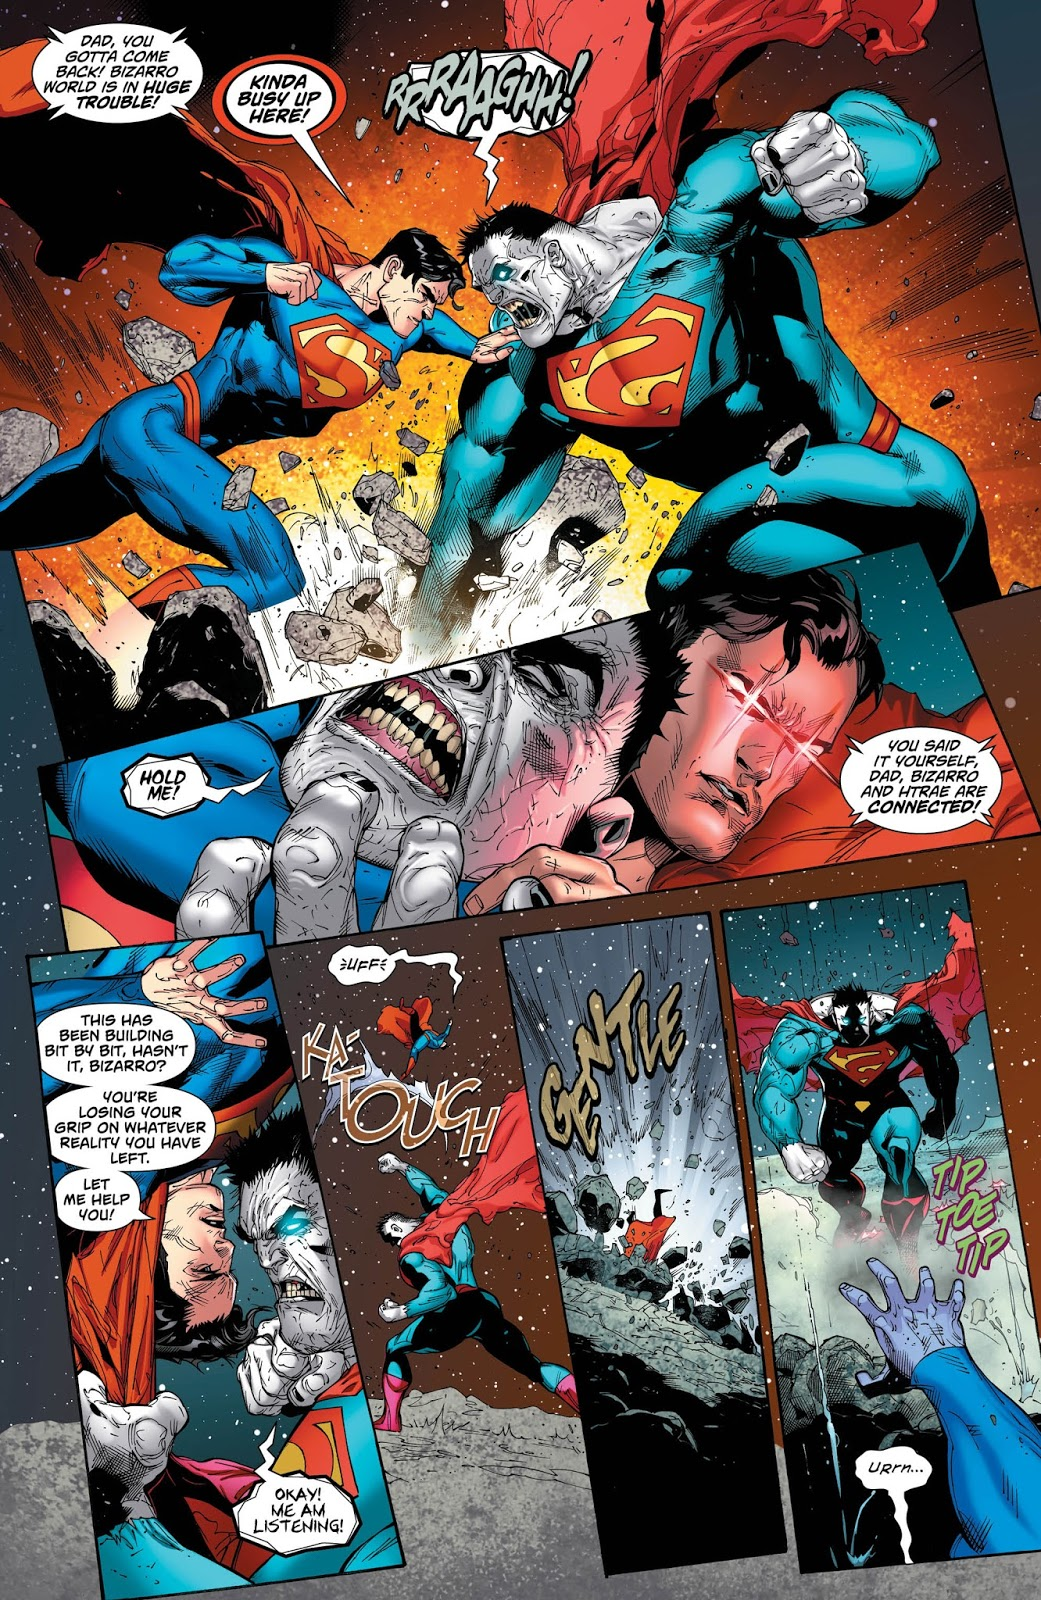 Weird Science DC Comics: Superman #44 Review and *SPOILERS* on